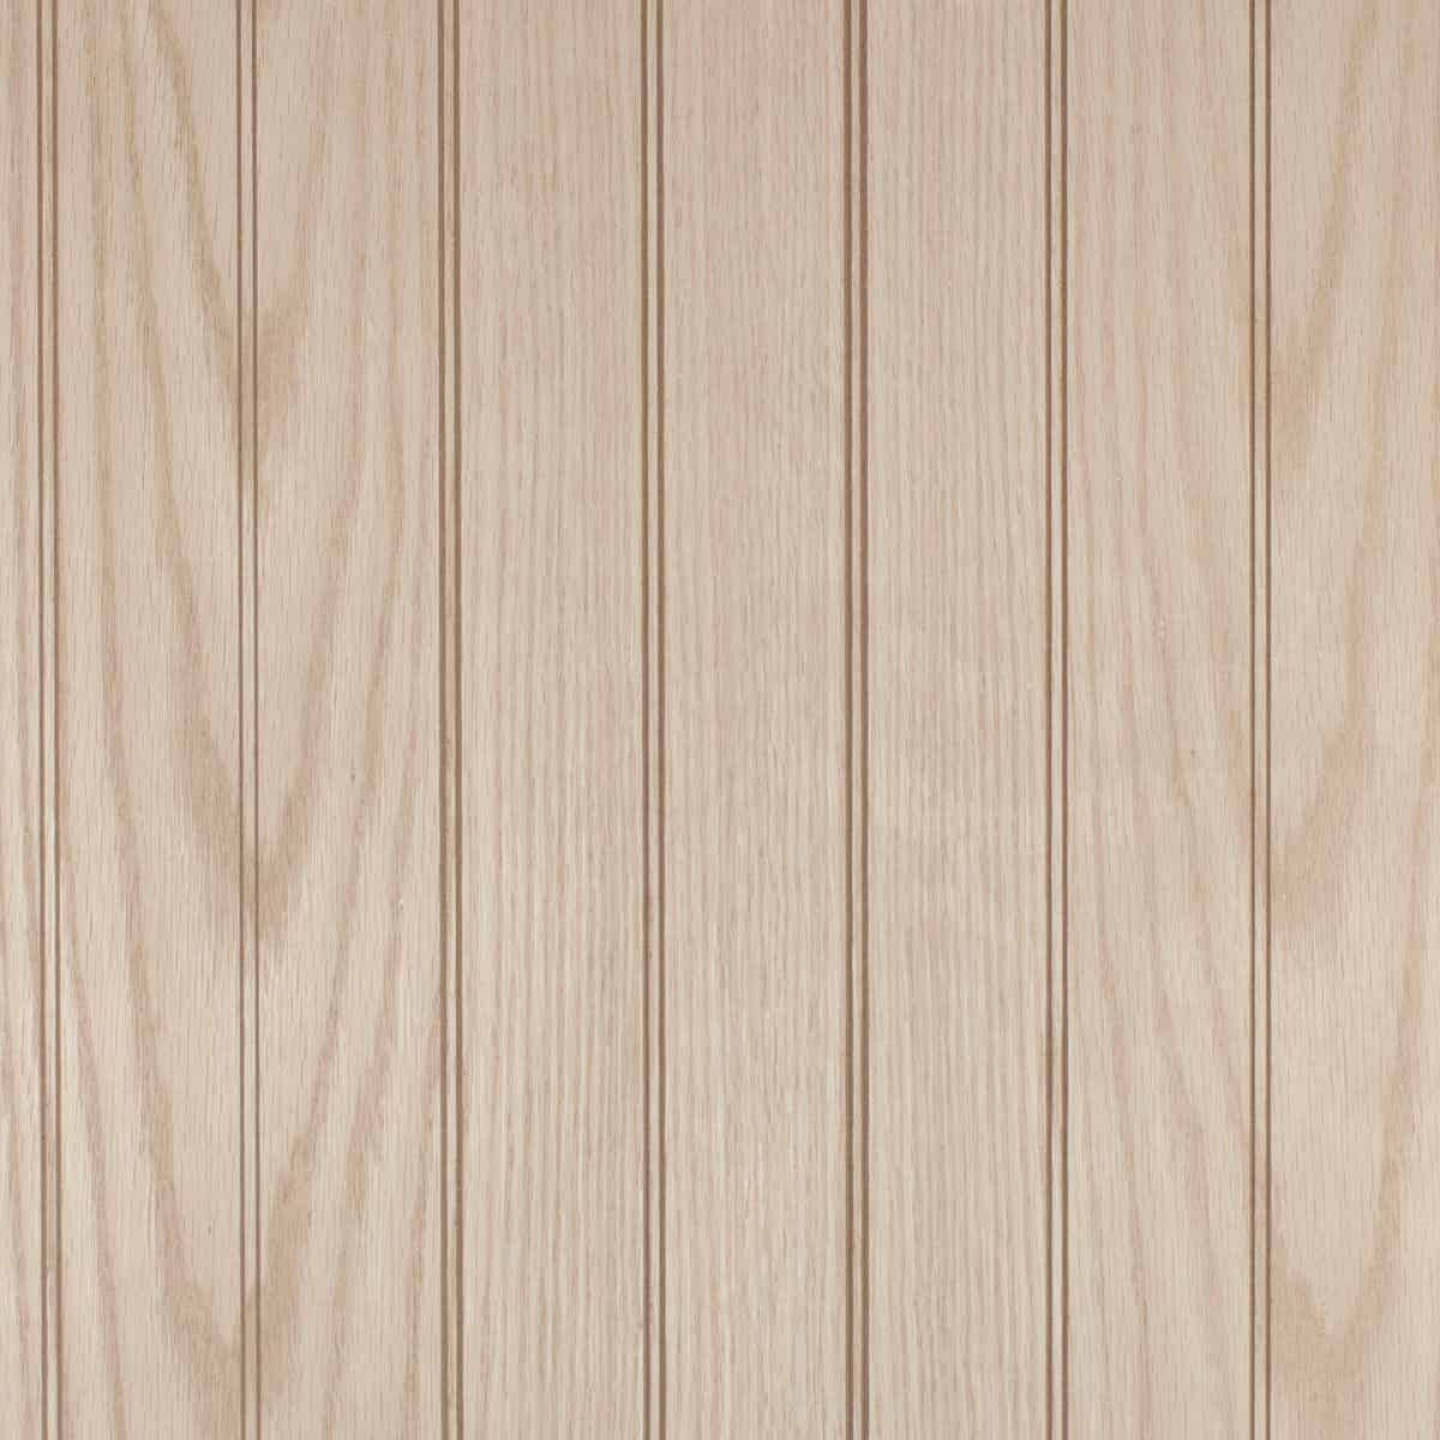 Global Product Sourcing 4 Ft. x 8 Ft. x 1/4 In. Vintage Oak Beaded Classic Wood Veneer Wall Paneling Image 1